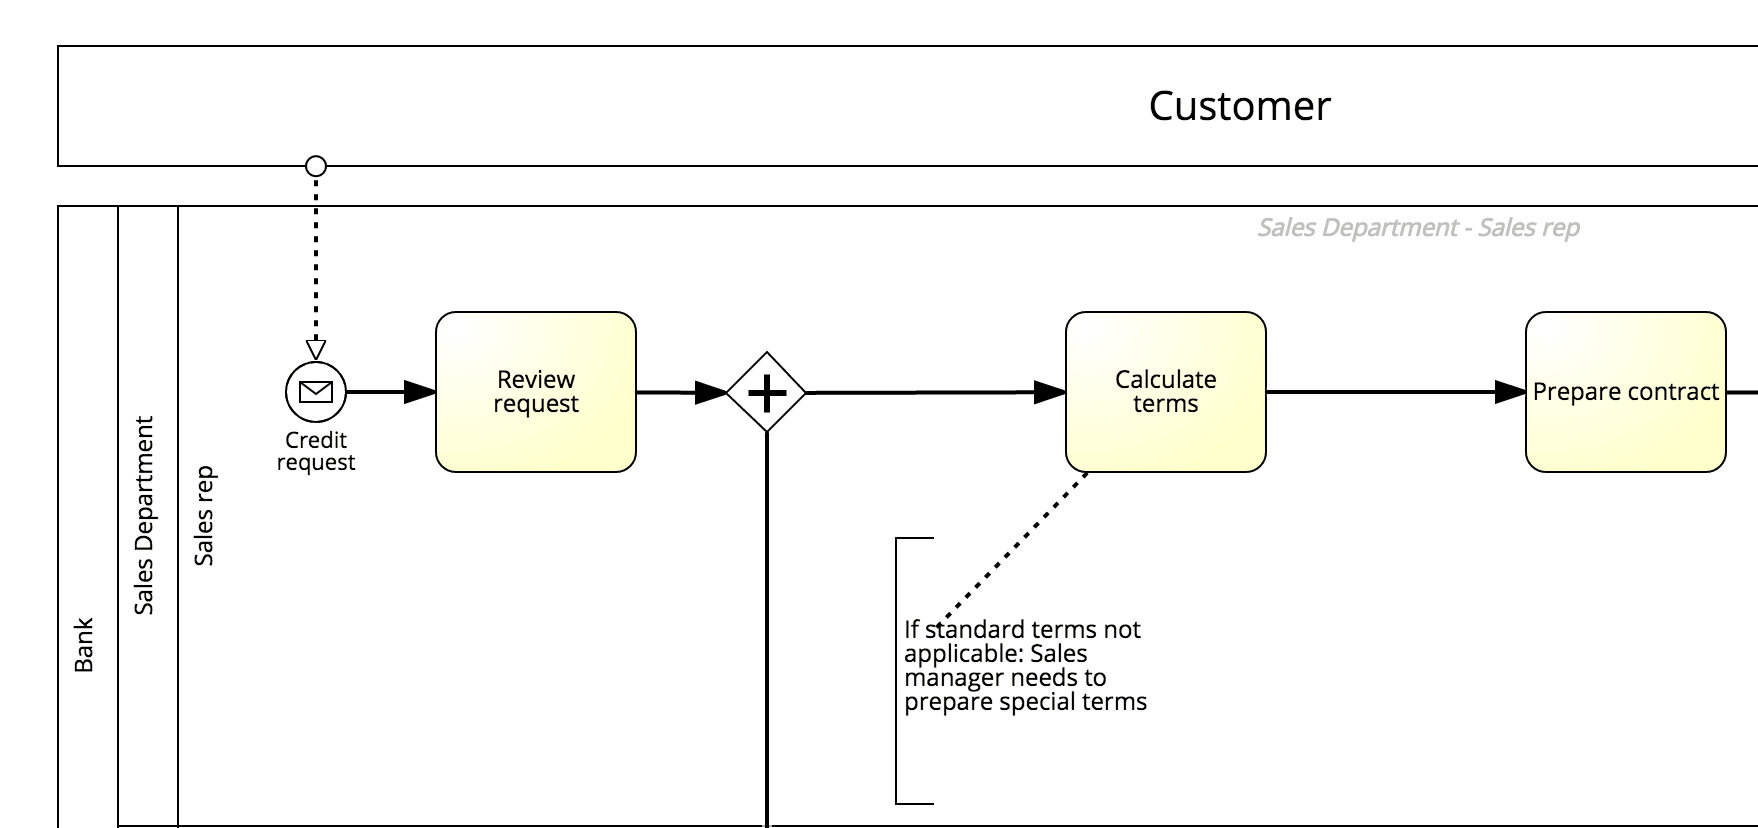 business process modeling style: incorrect: textual descriptions imply process flow - Screenshot